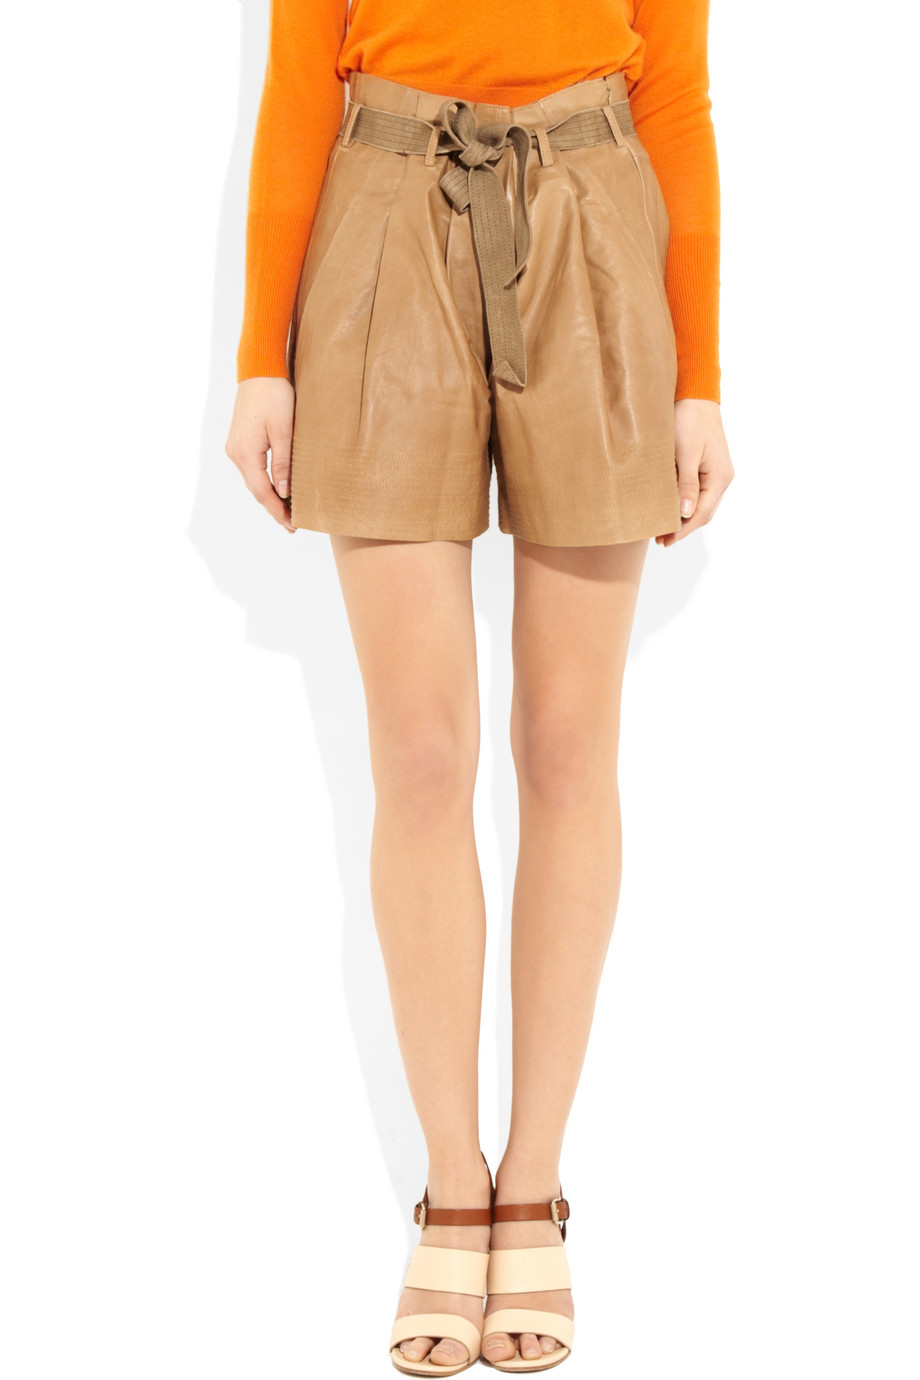 684335f9 See By Chloé Brown High-waisted Leather Shorts